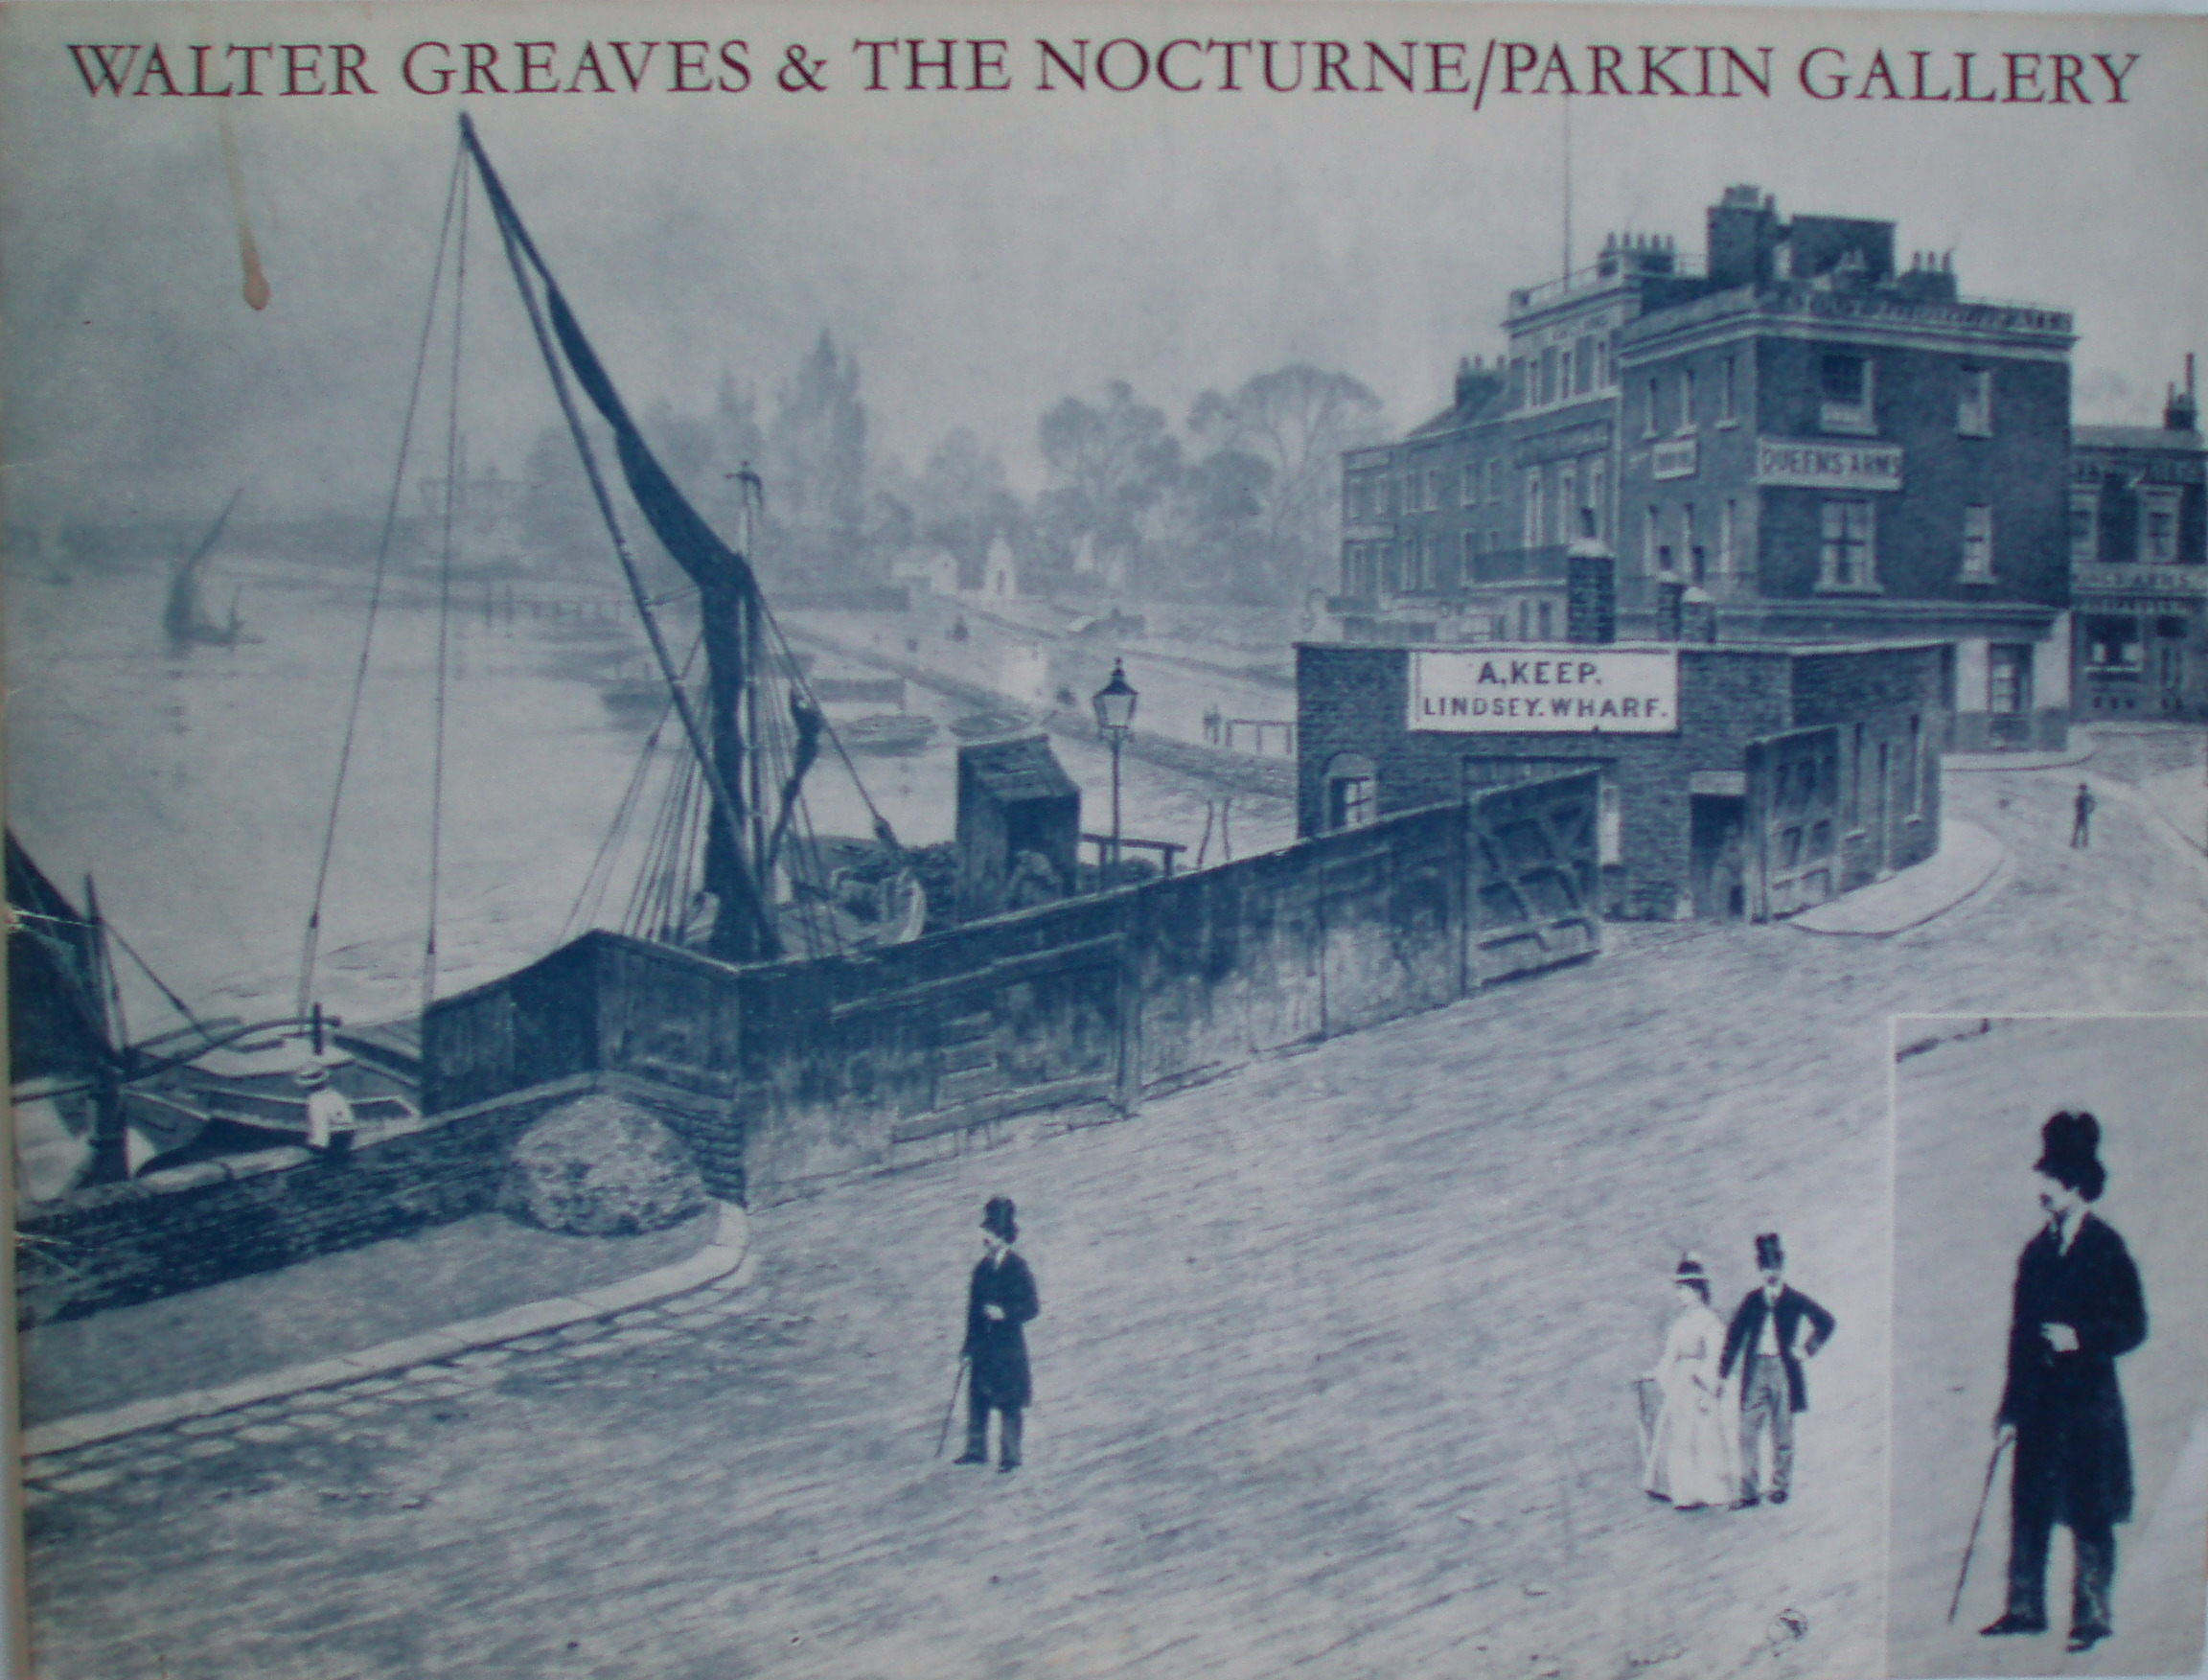 Walter Greaves and the Nocturne